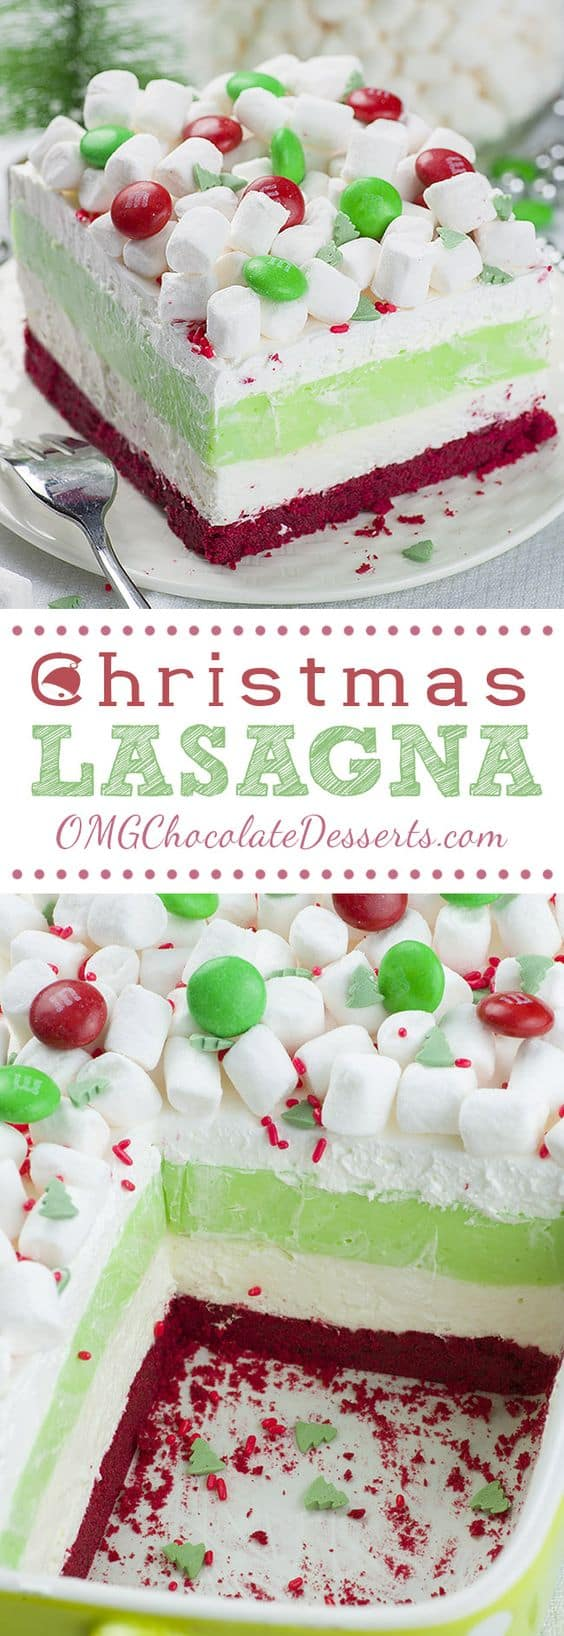 Christmas Lasagna - Best Christmas Desserts - Recipes and Christmas Treats to Try this Year! Try these amazing and cute easy Christmas dessert recipes to have a great party for your kids, friends, and family! Cupcakes, cakes, sweet bites, pies, brownies, home-made Christmas popcorn, Christmas cookies and other delights. #christmas #dessertfoodrecipes #xmas #recipes #food #christmasfood